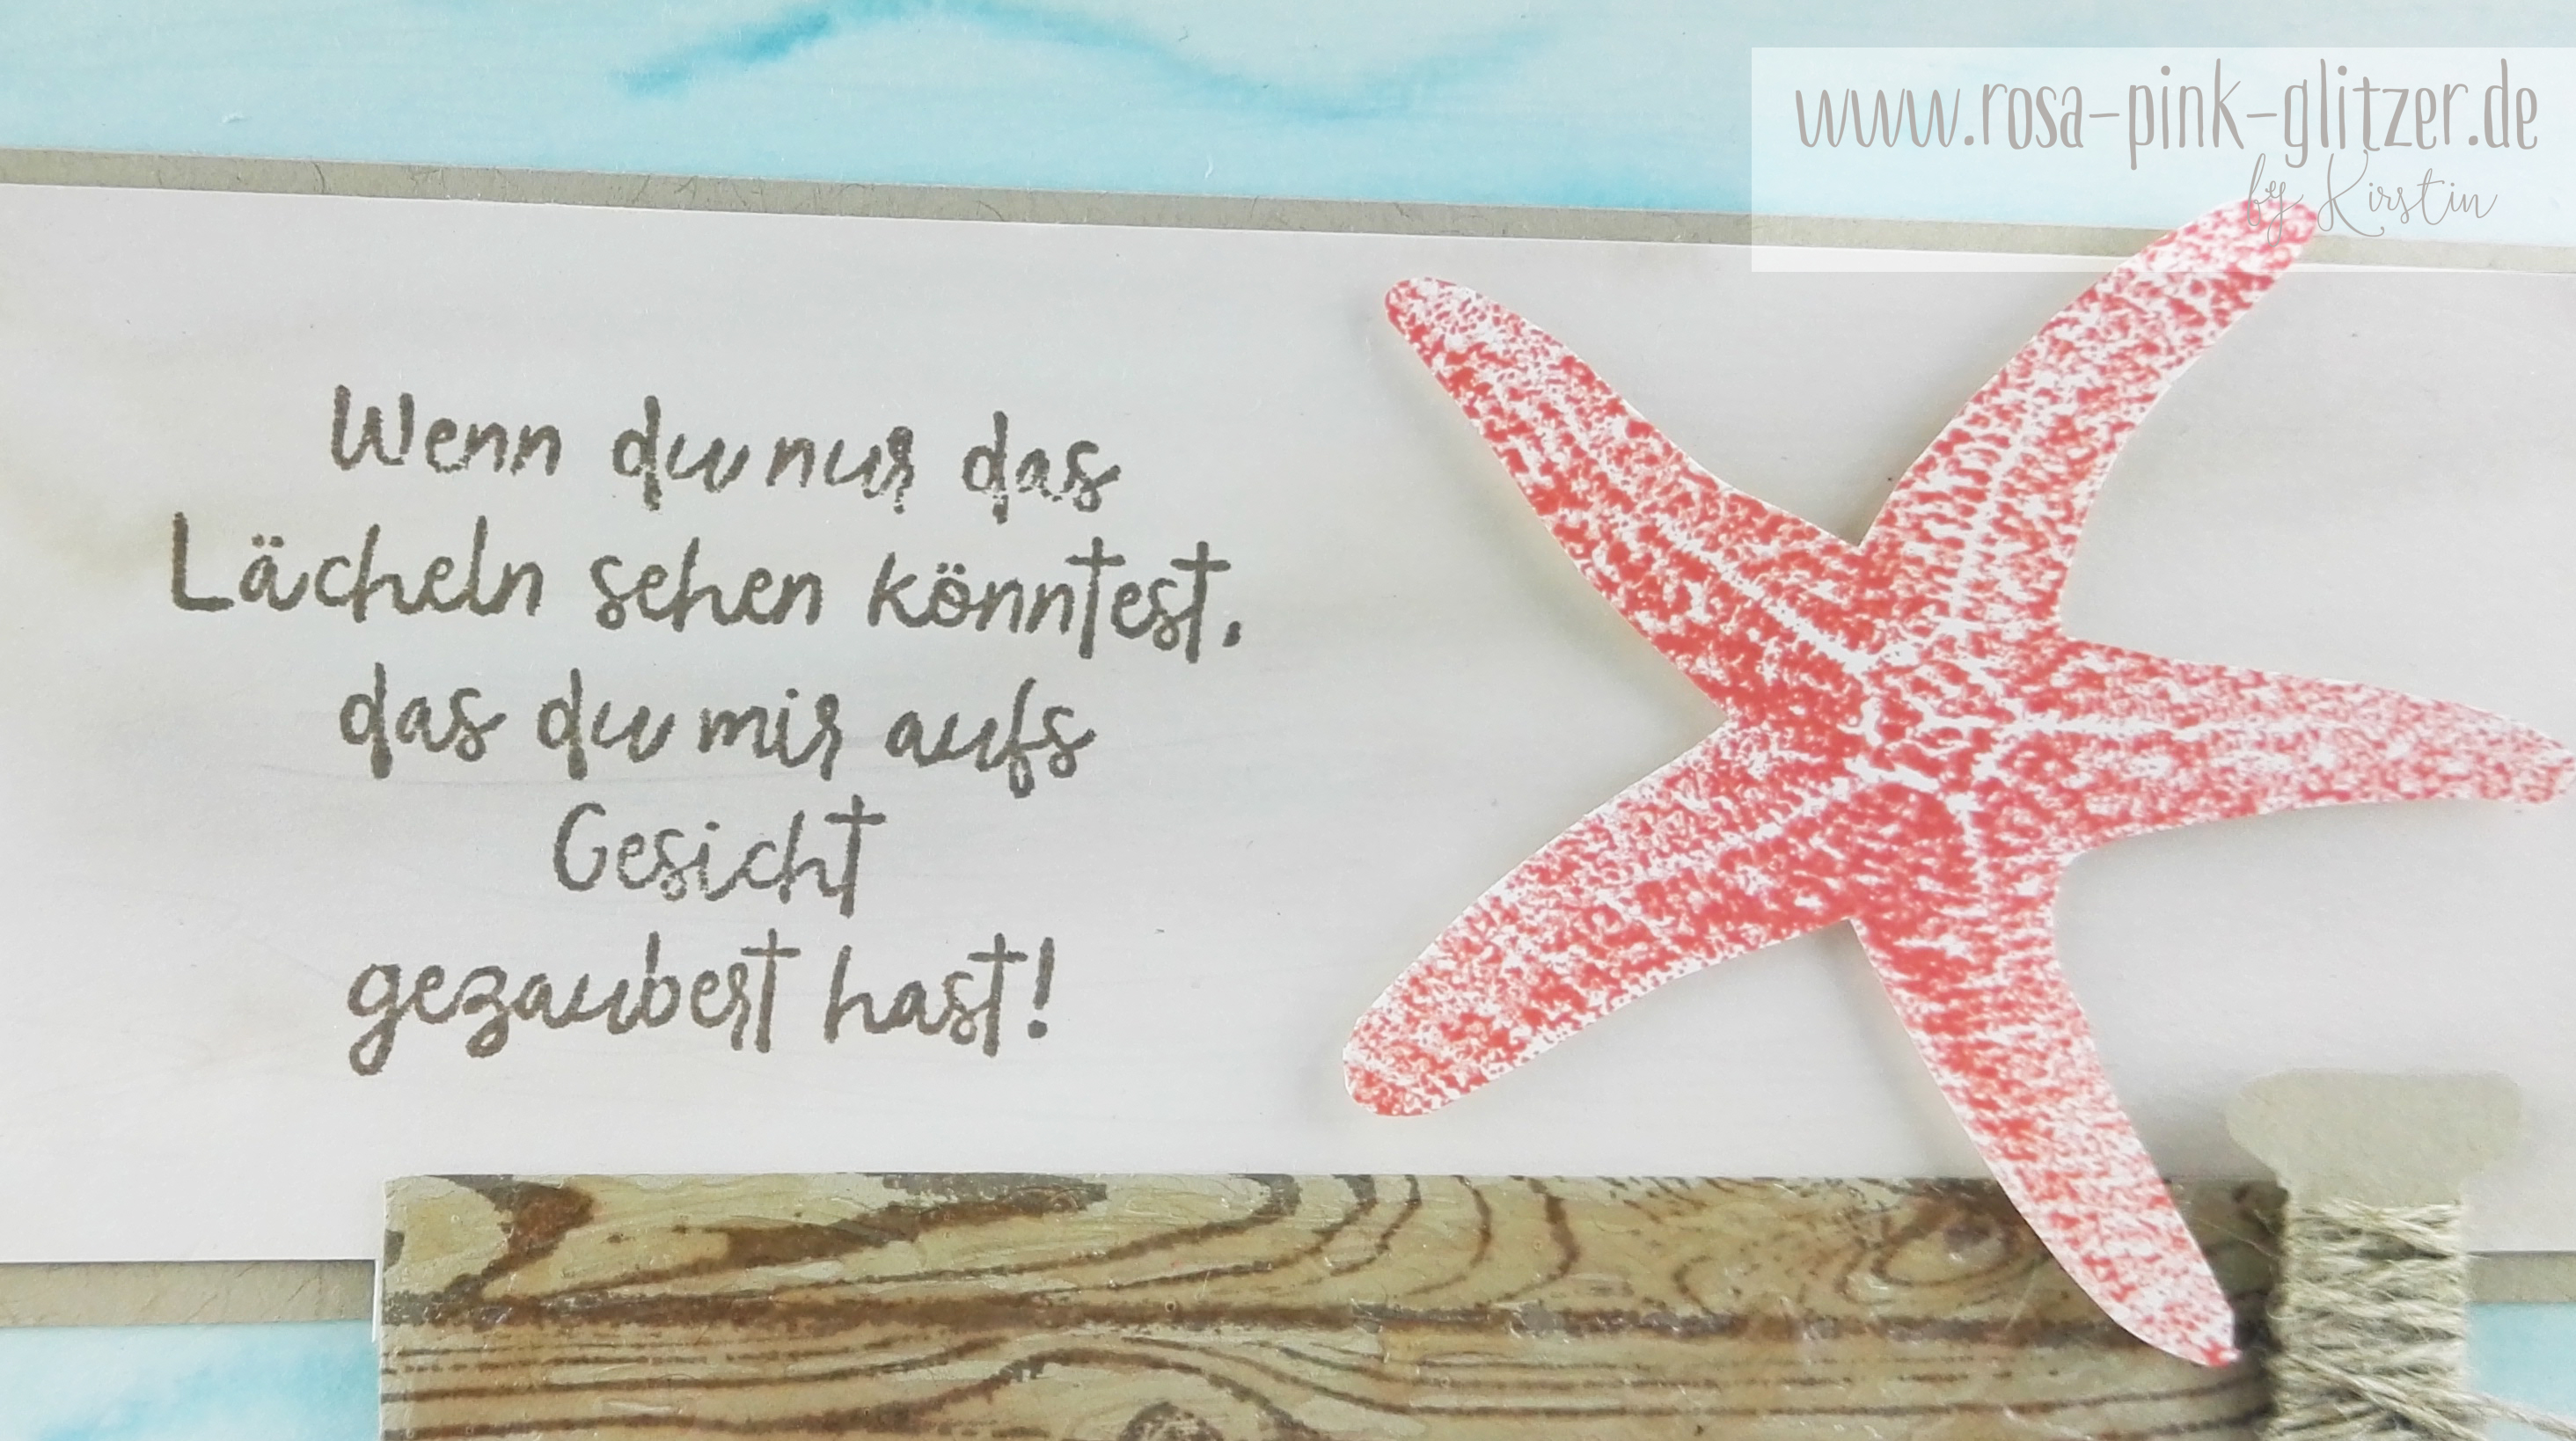 Stampin up Landshut - Picture Perfect Seestern 3